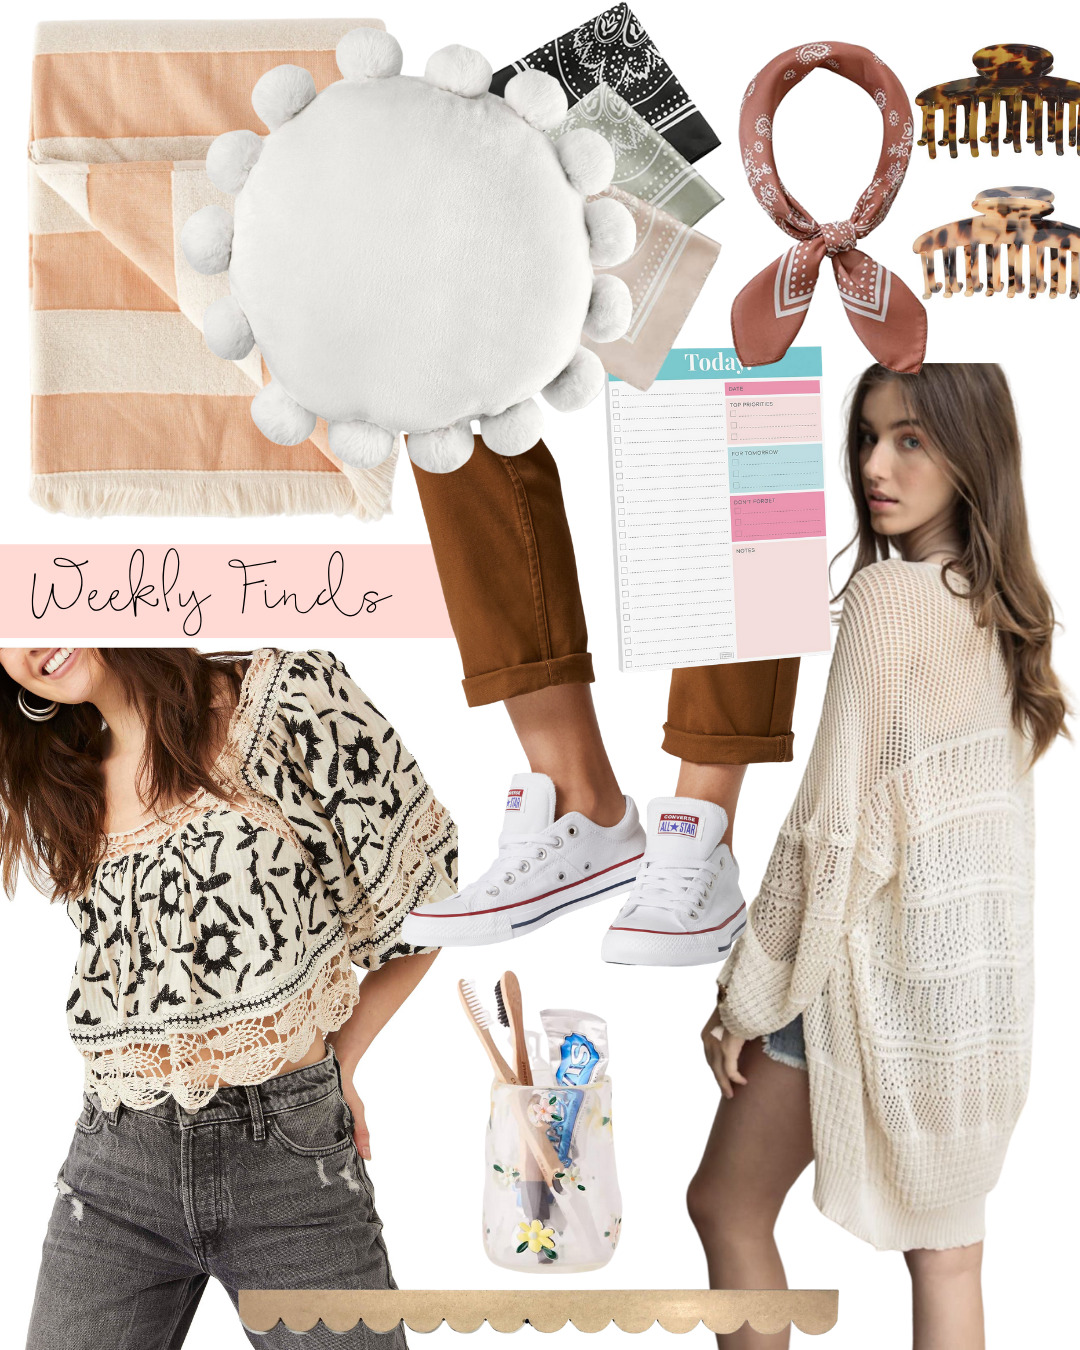 a collage of Weekly Finds + Summer Accessories Fashion and Home Finds